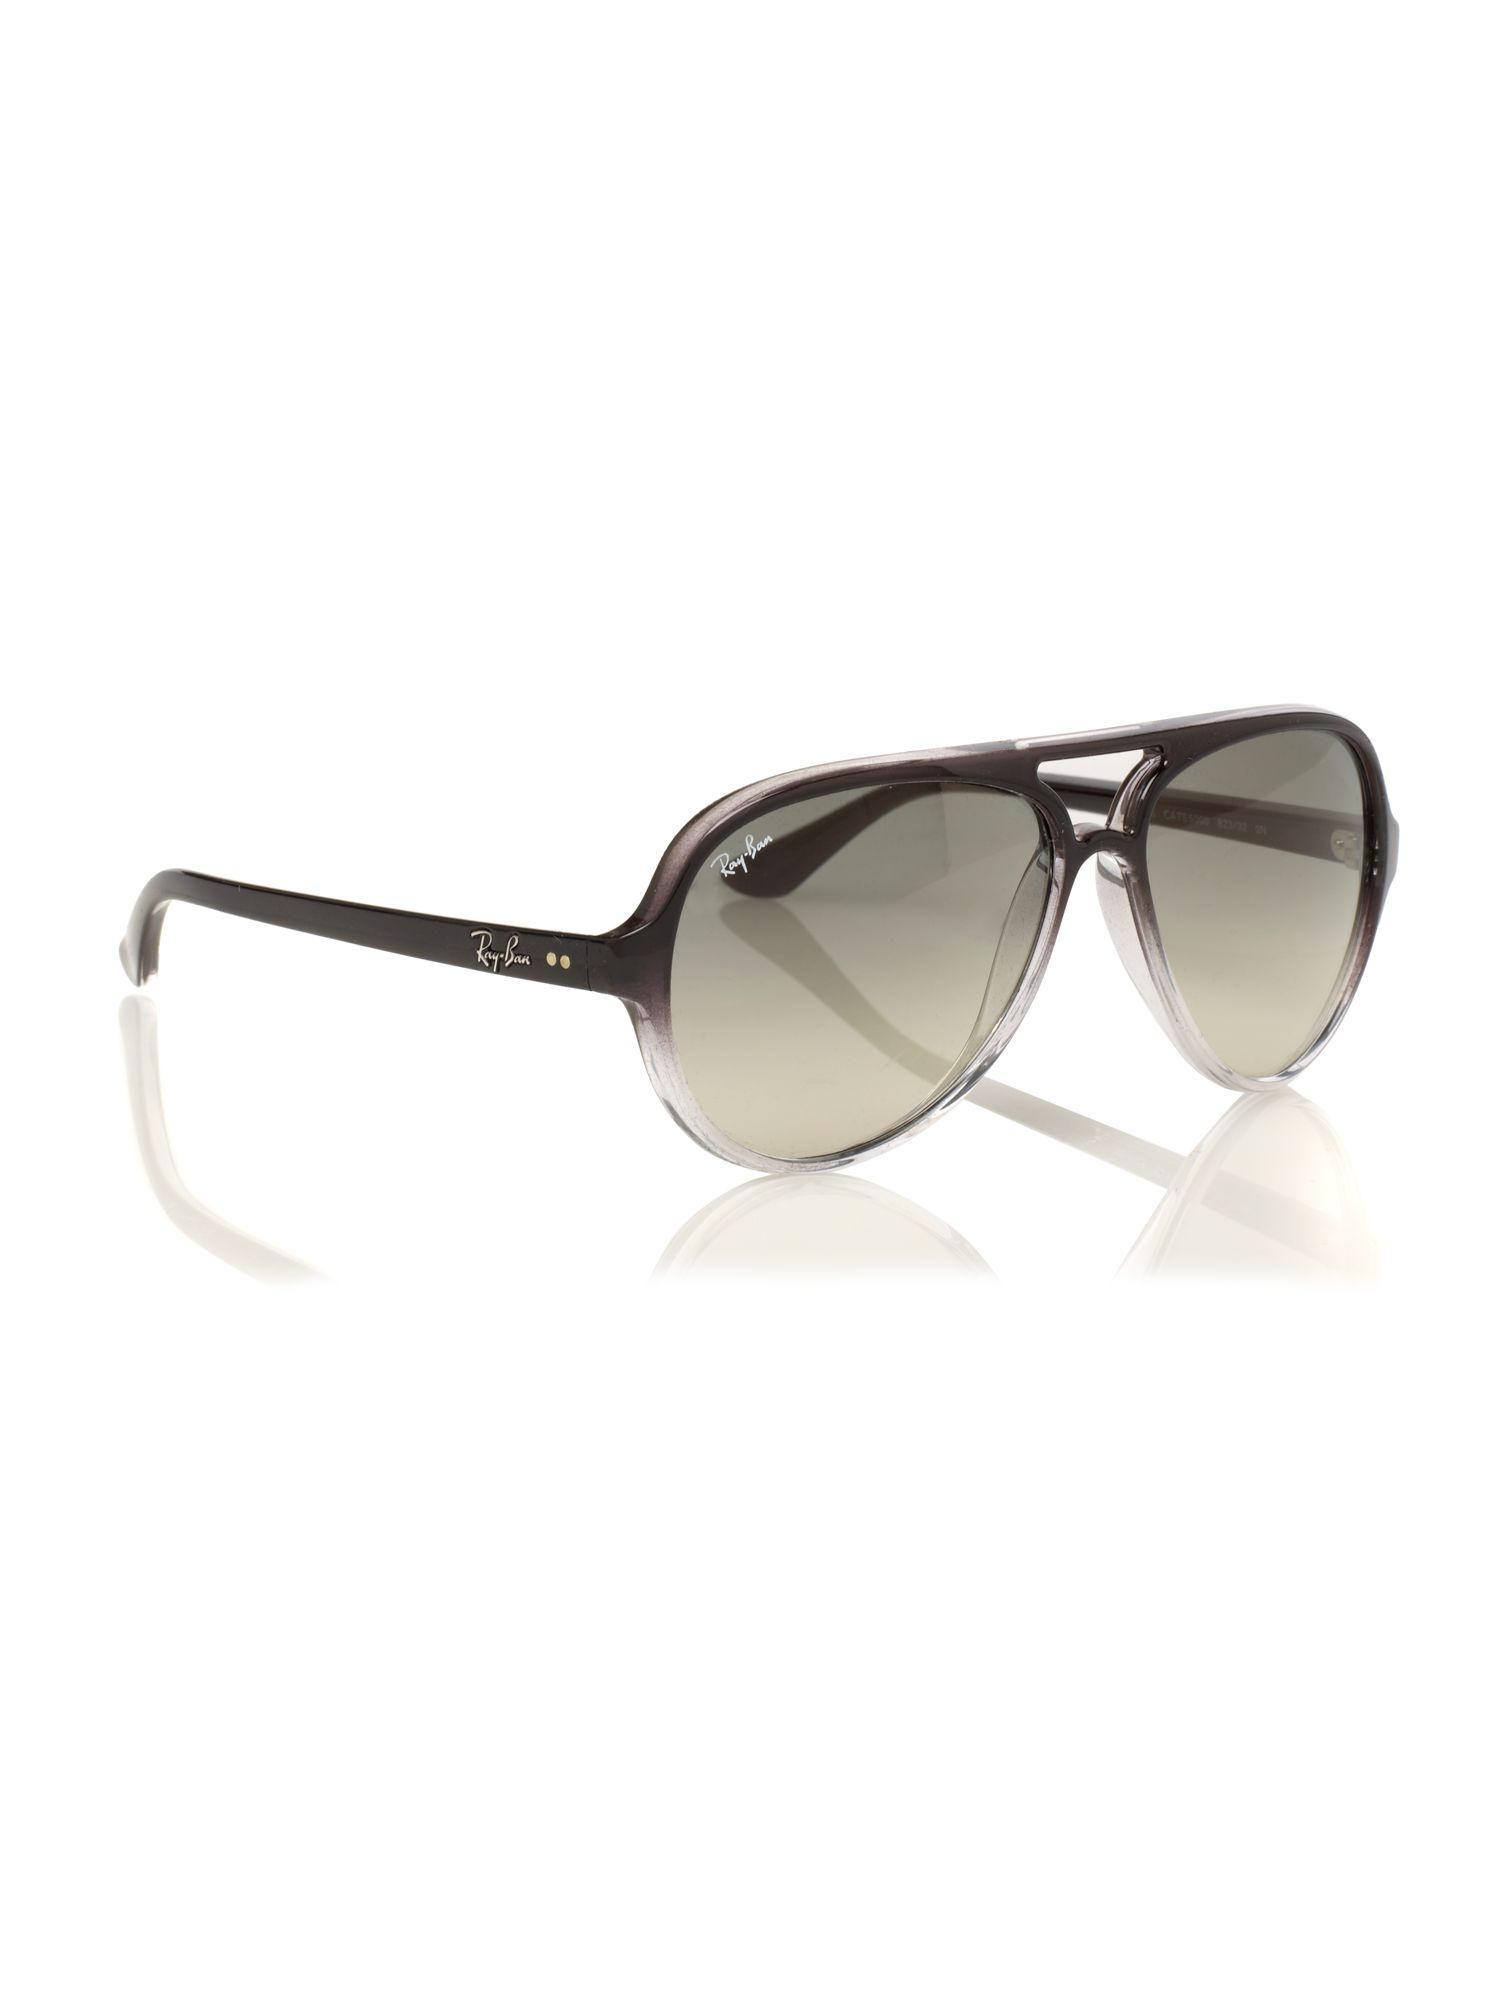 fd7b067cb25 Ray Ban Cats Sunglasses Mens « Heritage Malta